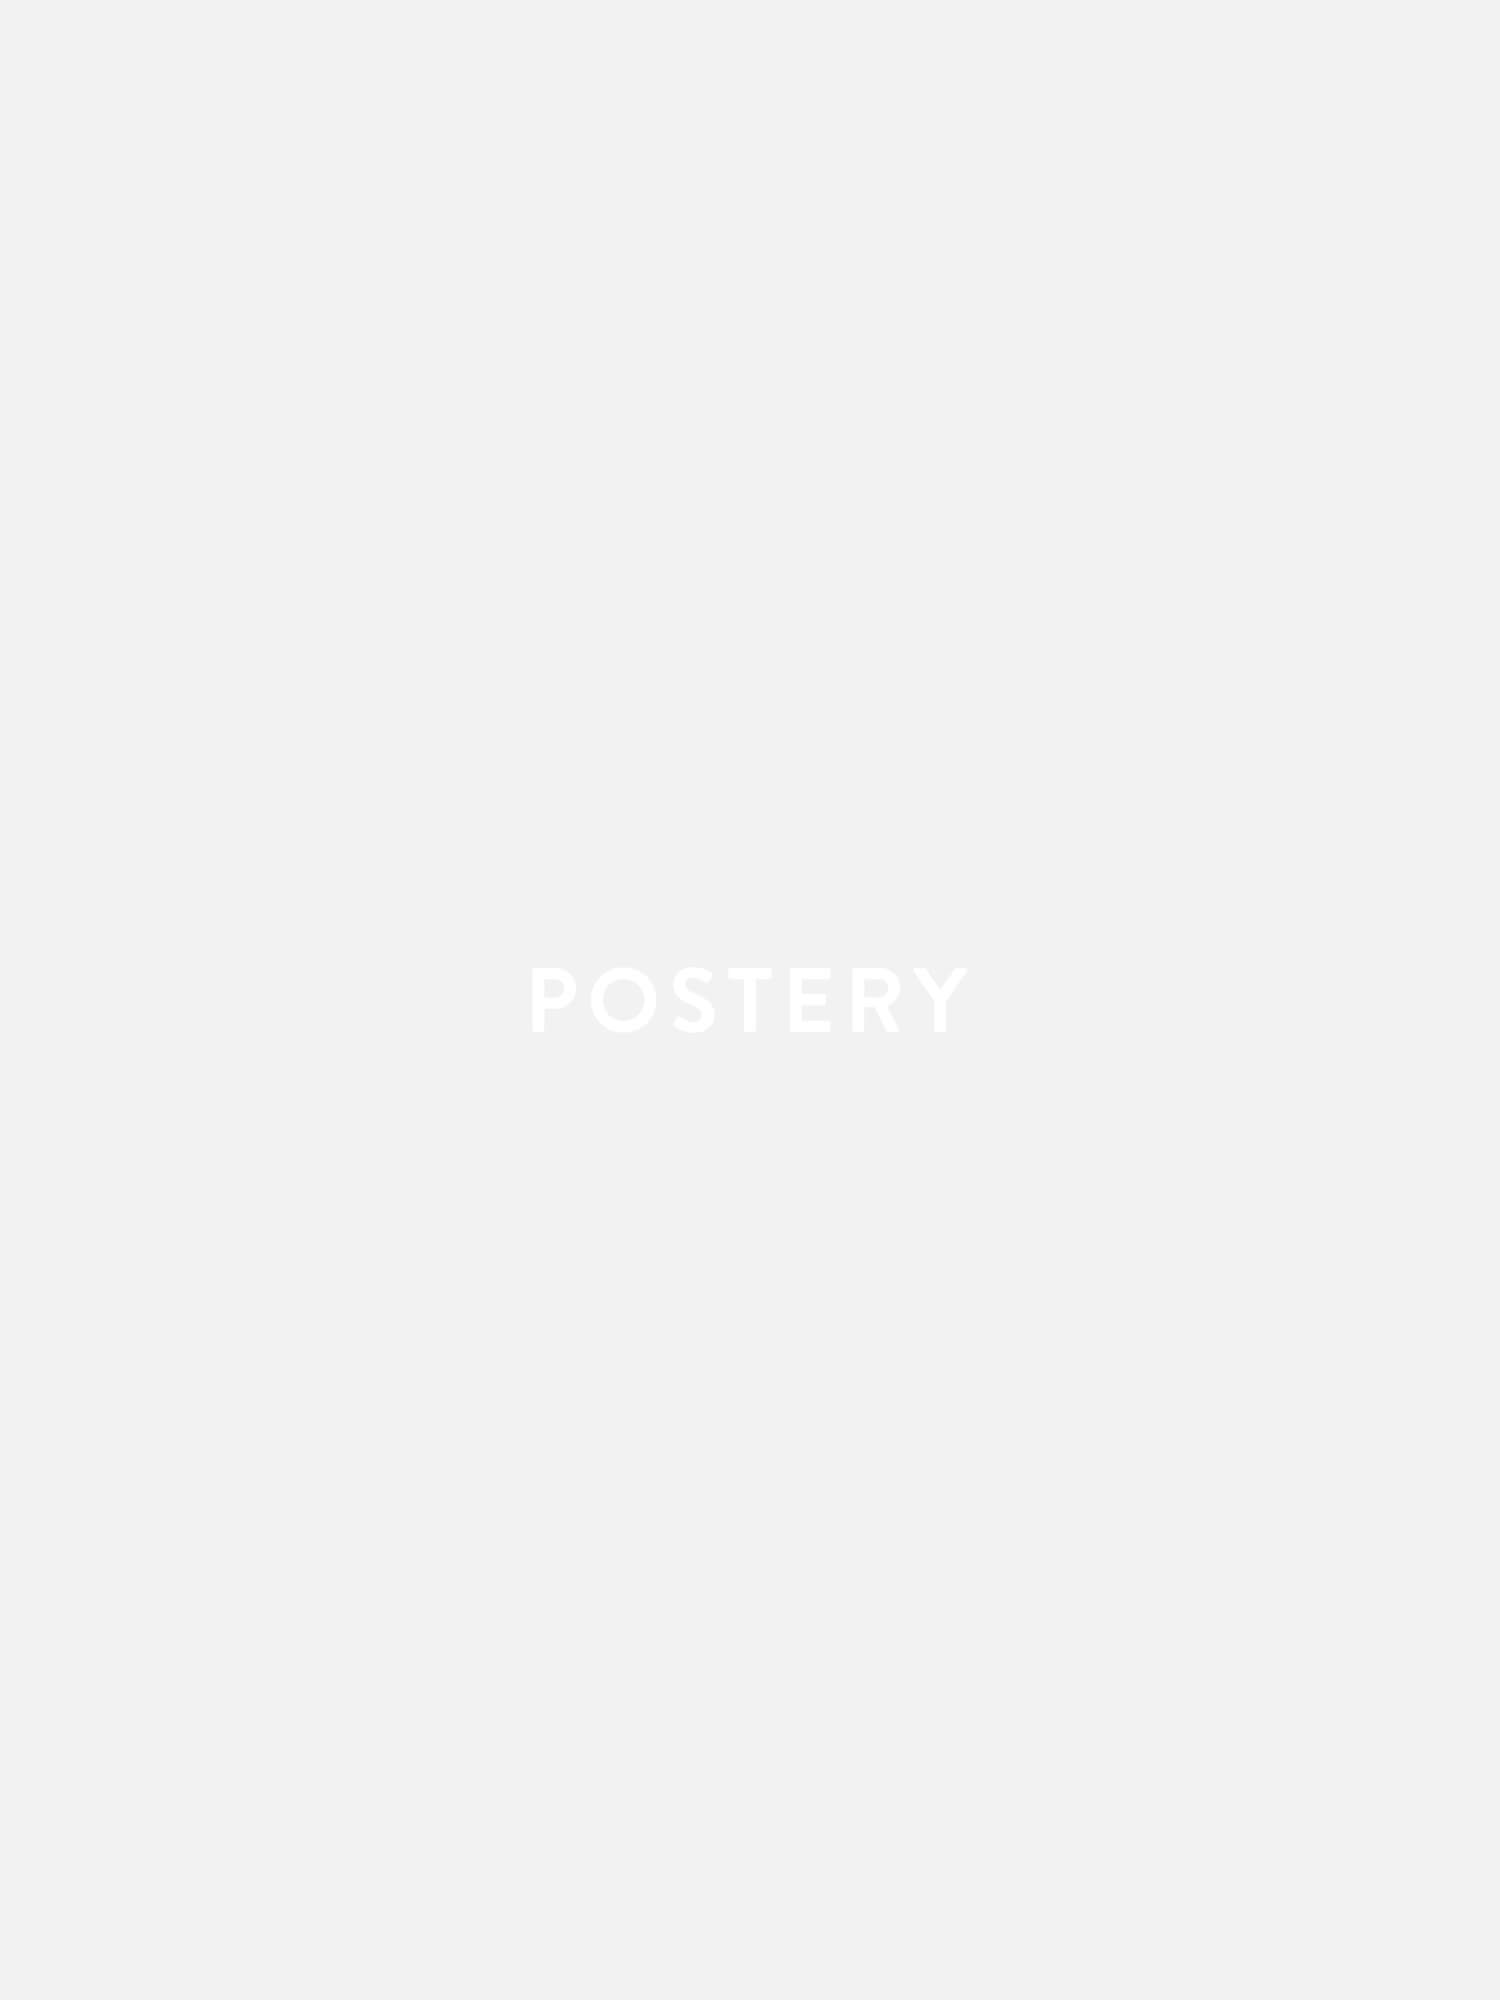 Sleeping Mountain Poster